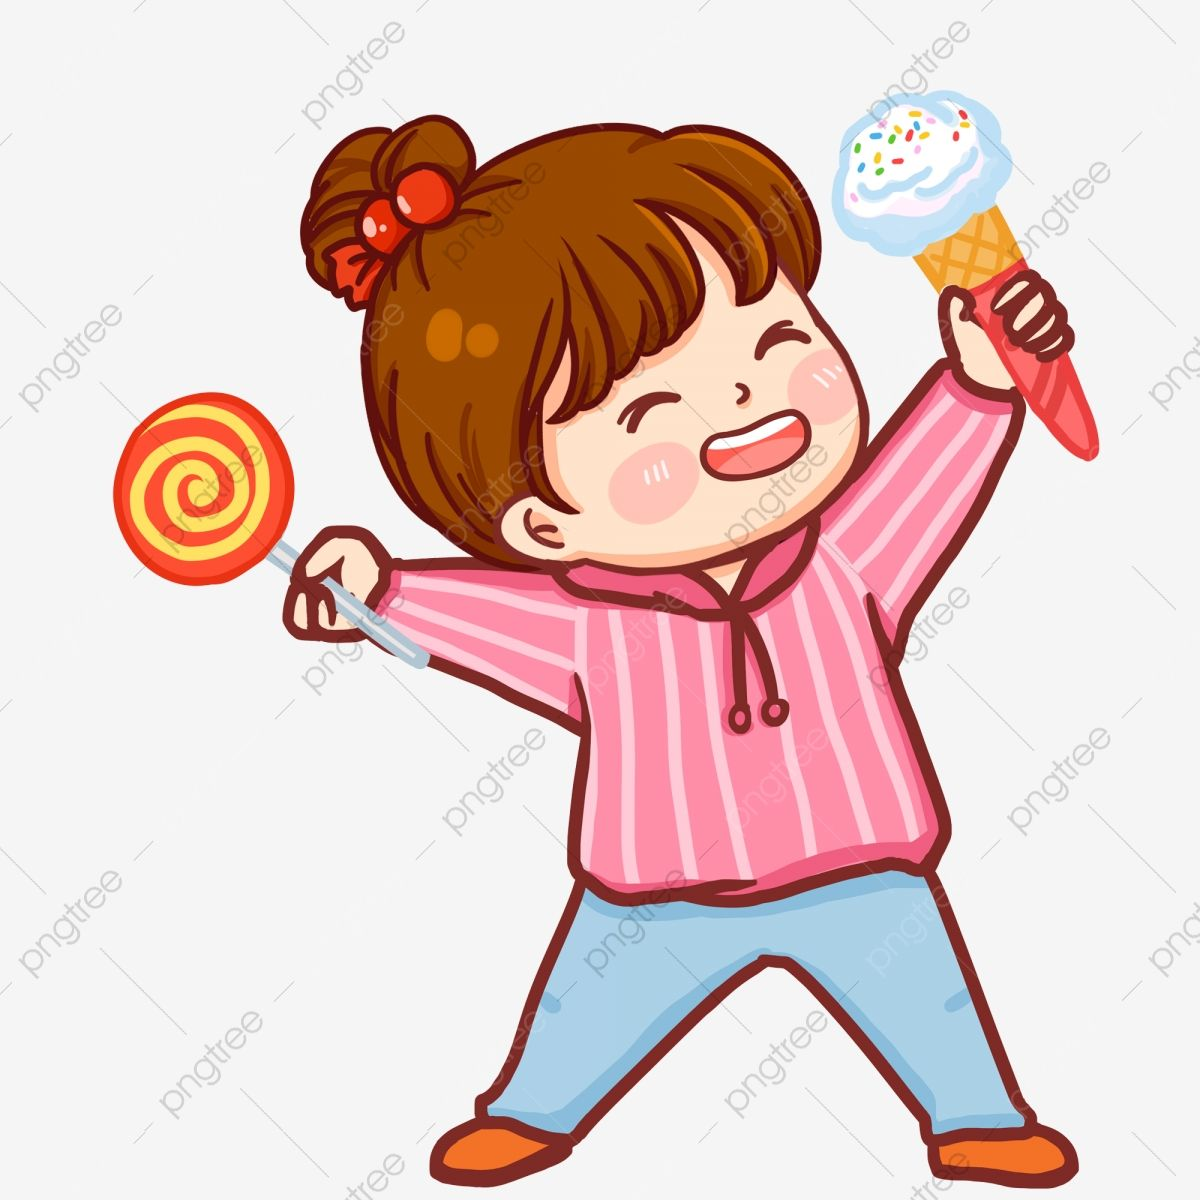 Painted Cute Little Girl Eating Lollipop And Ice Cream Painted Cute Cartoon Png Transparent Clipart Image And Psd File For Free Download Cute Little Girls Little Girl Illustrations Cute Pink Background